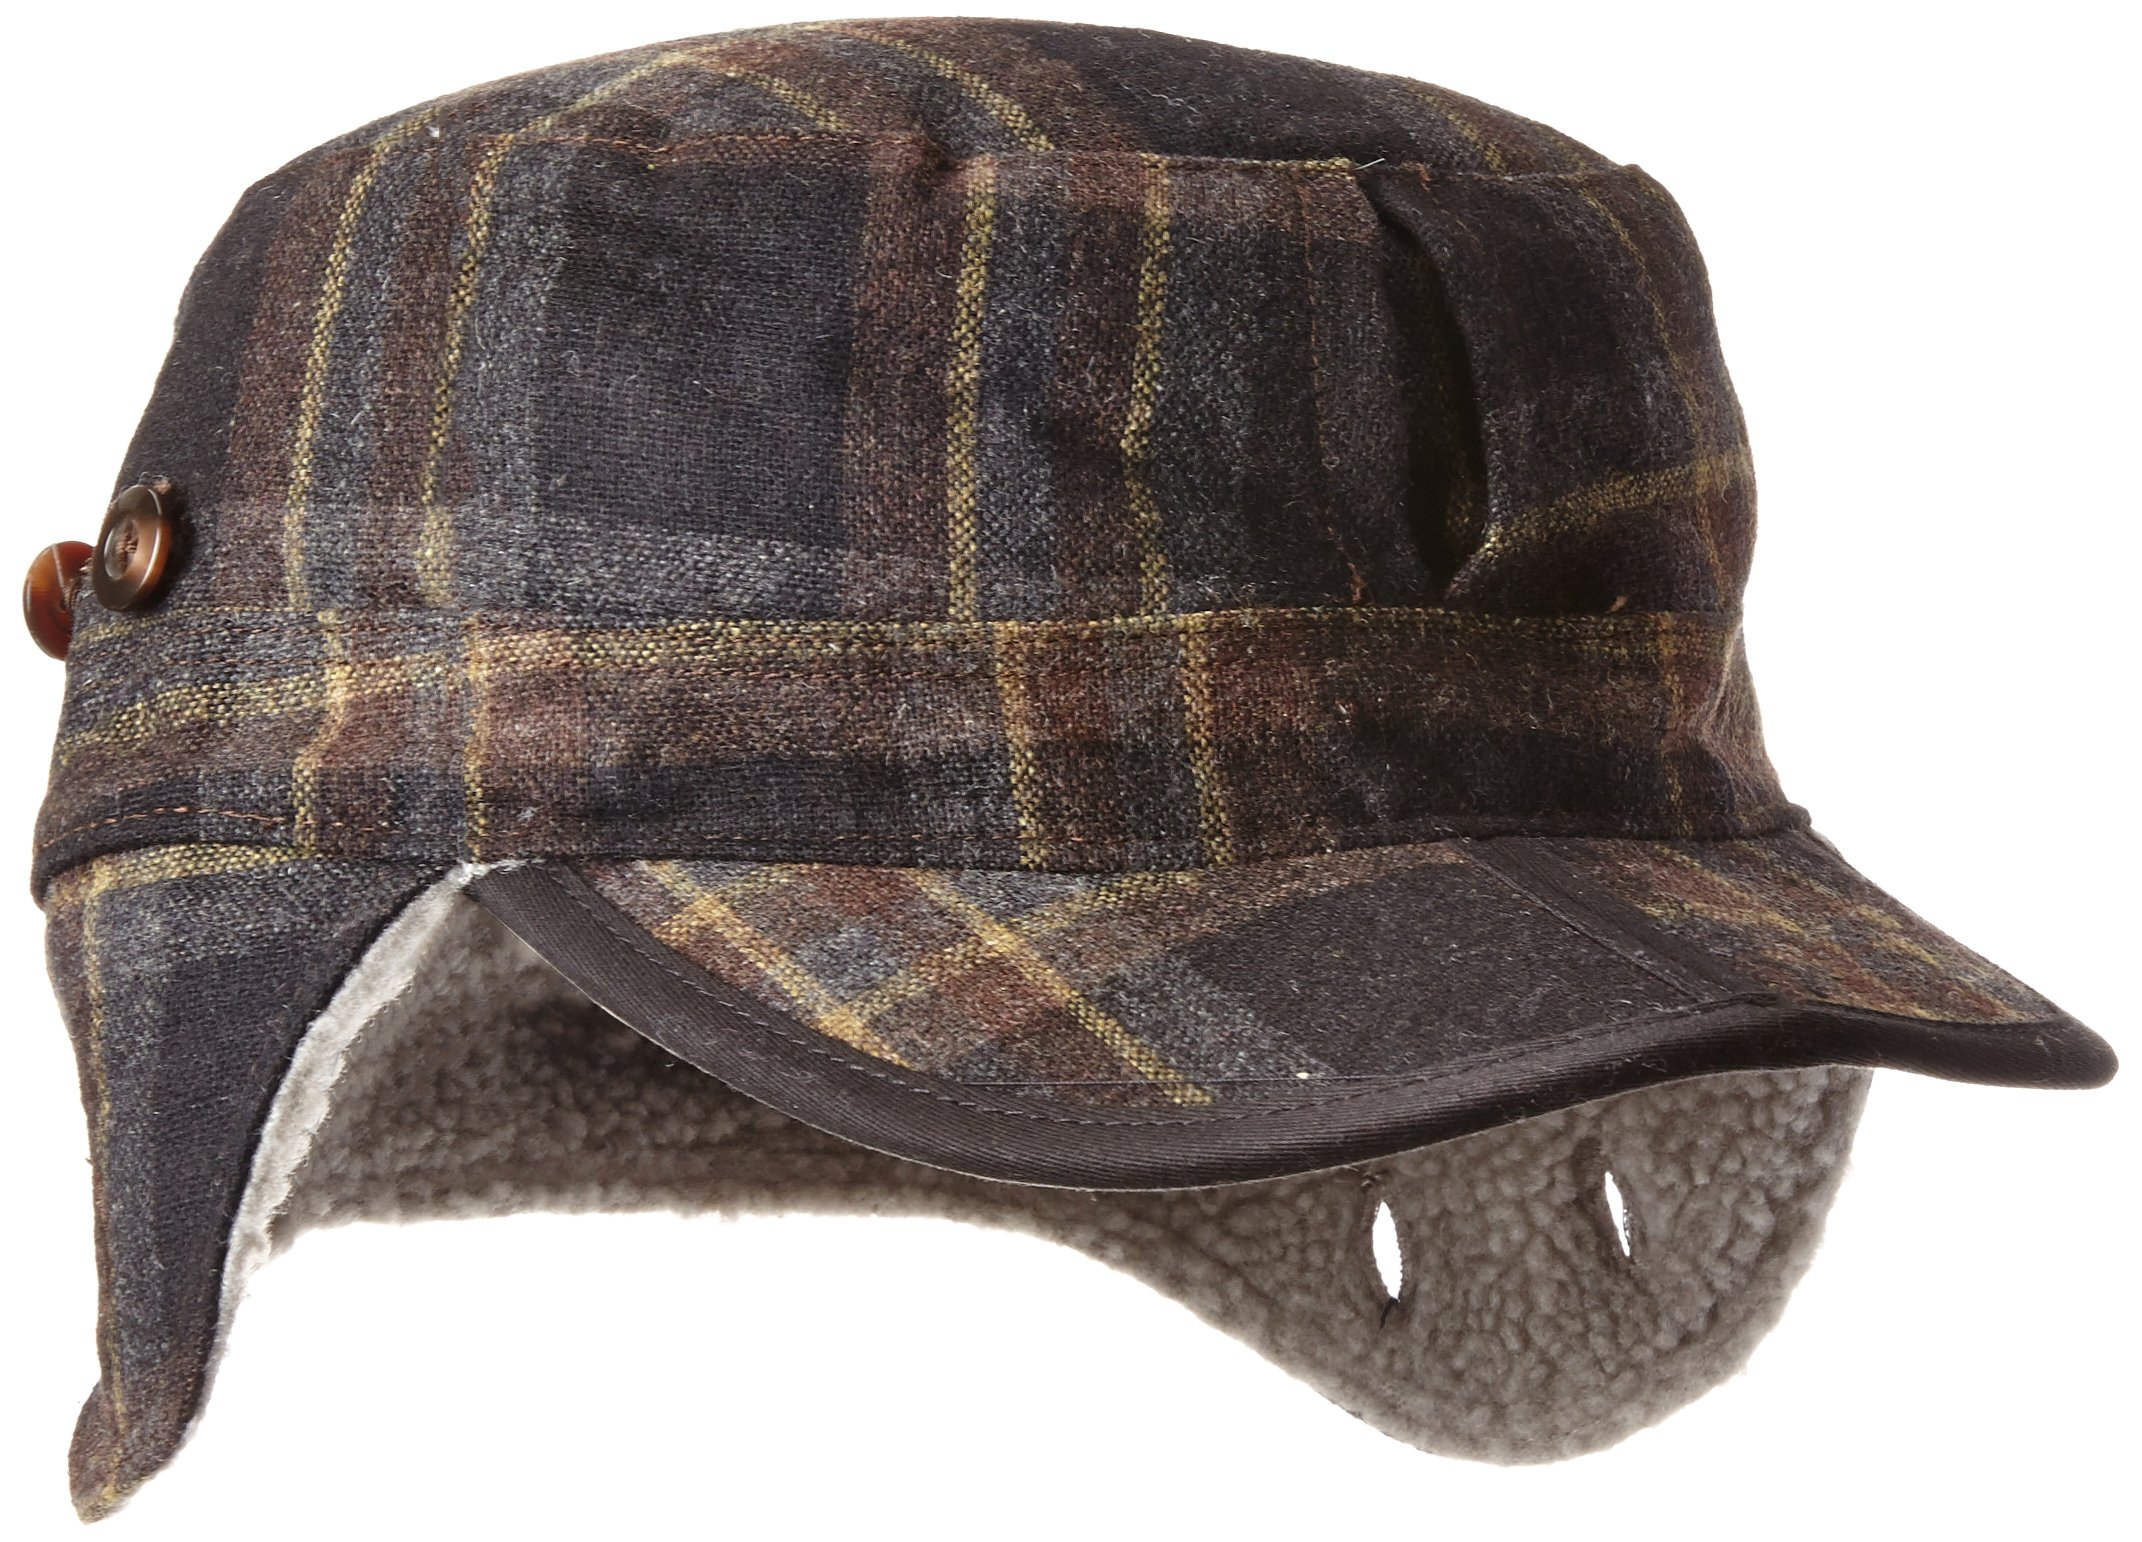 Outdoor Research Yukon Cap, Black/Earth, Large